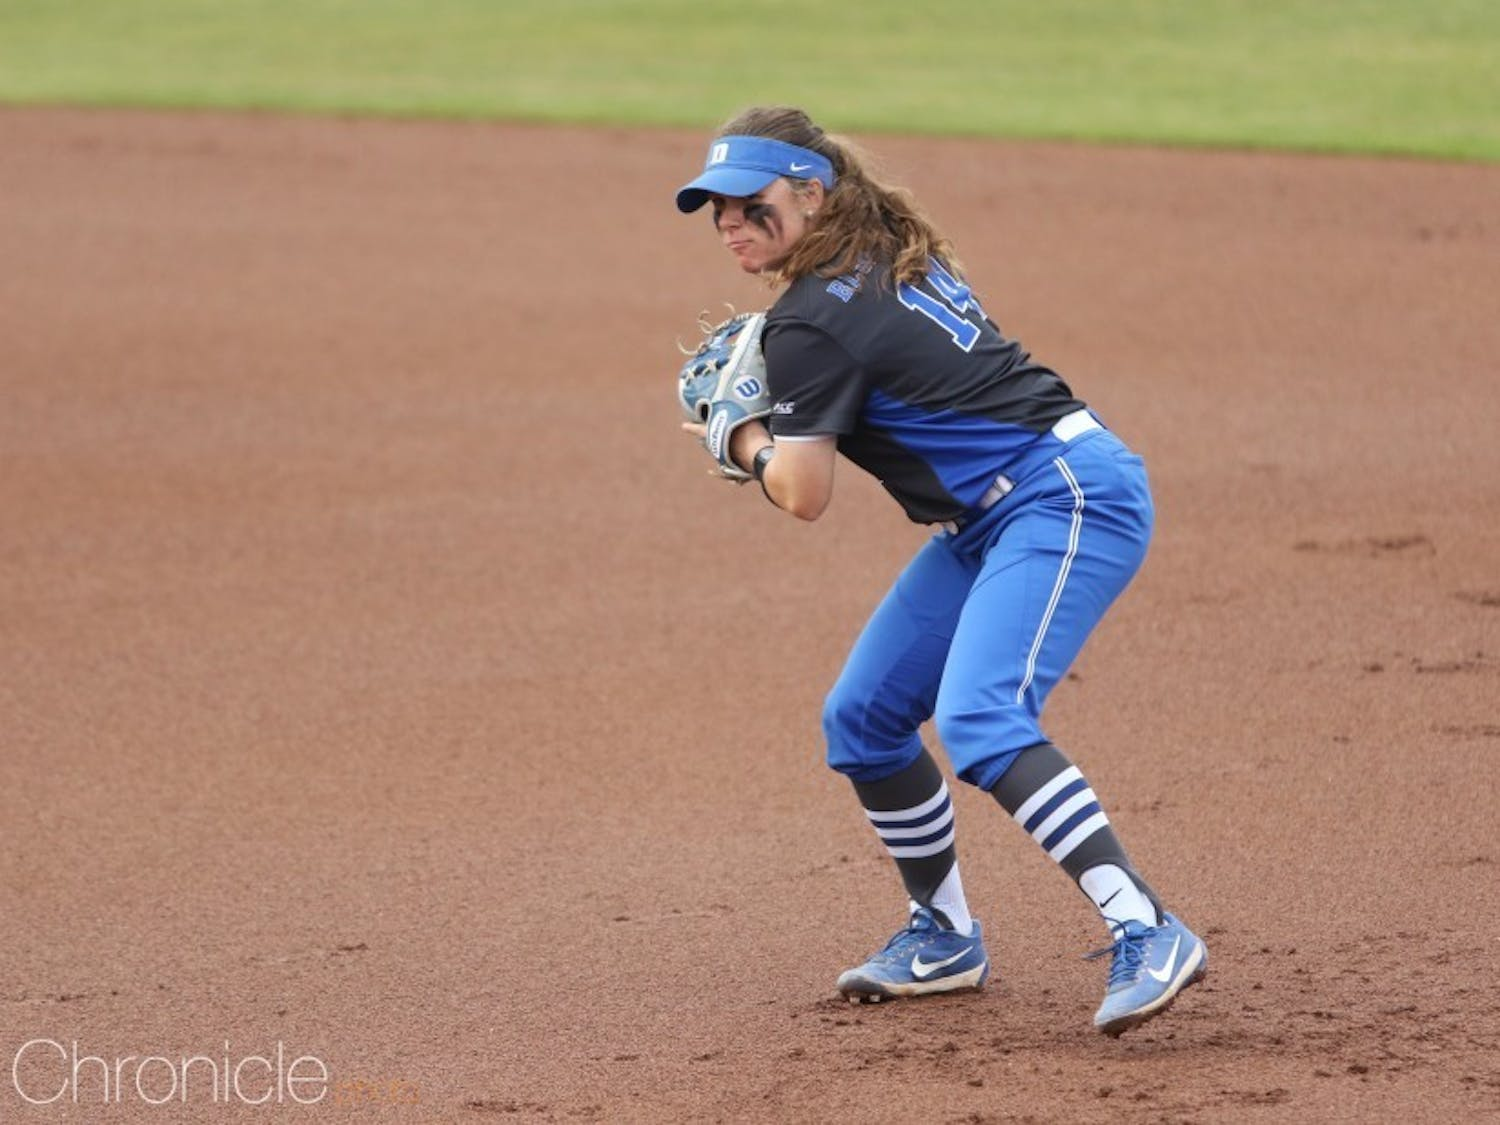 Senior Raine Wilson announced over the summer that she will be returning to Duke for one more season thanks to the NCAA's extra eligibility ruling.